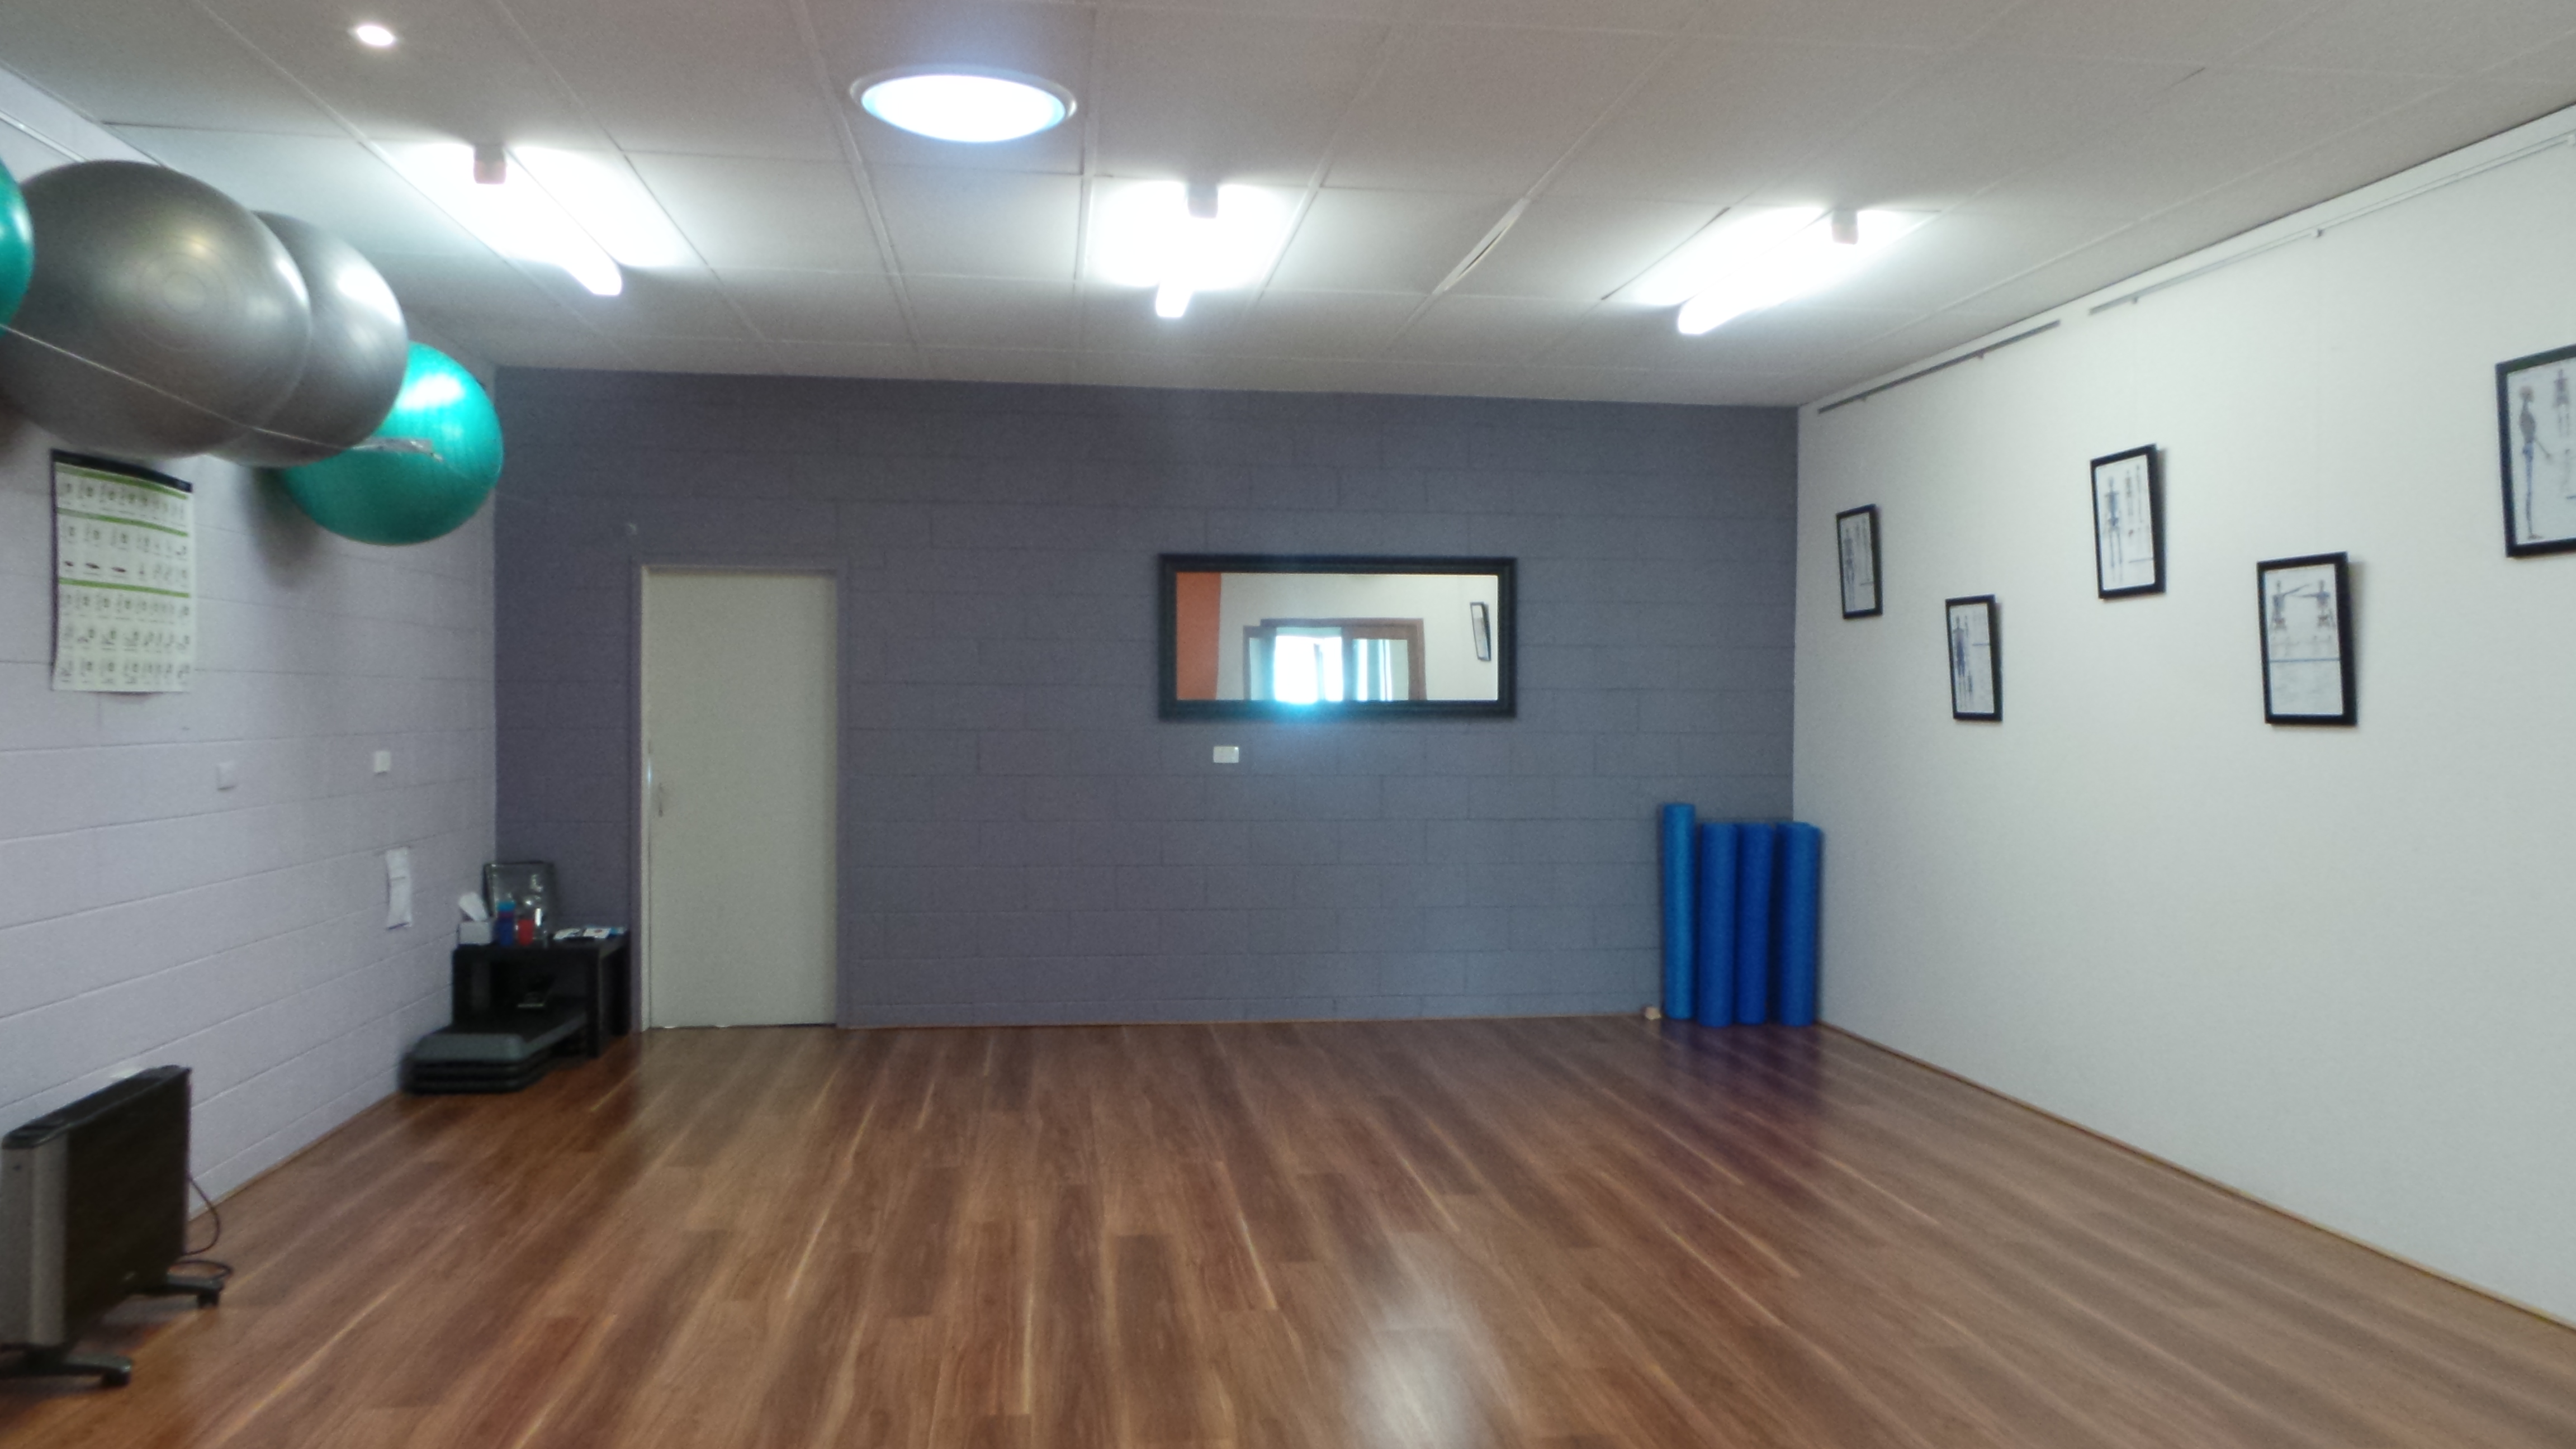 Studio For Rent Adelaide Studio For Hire In Adelaide